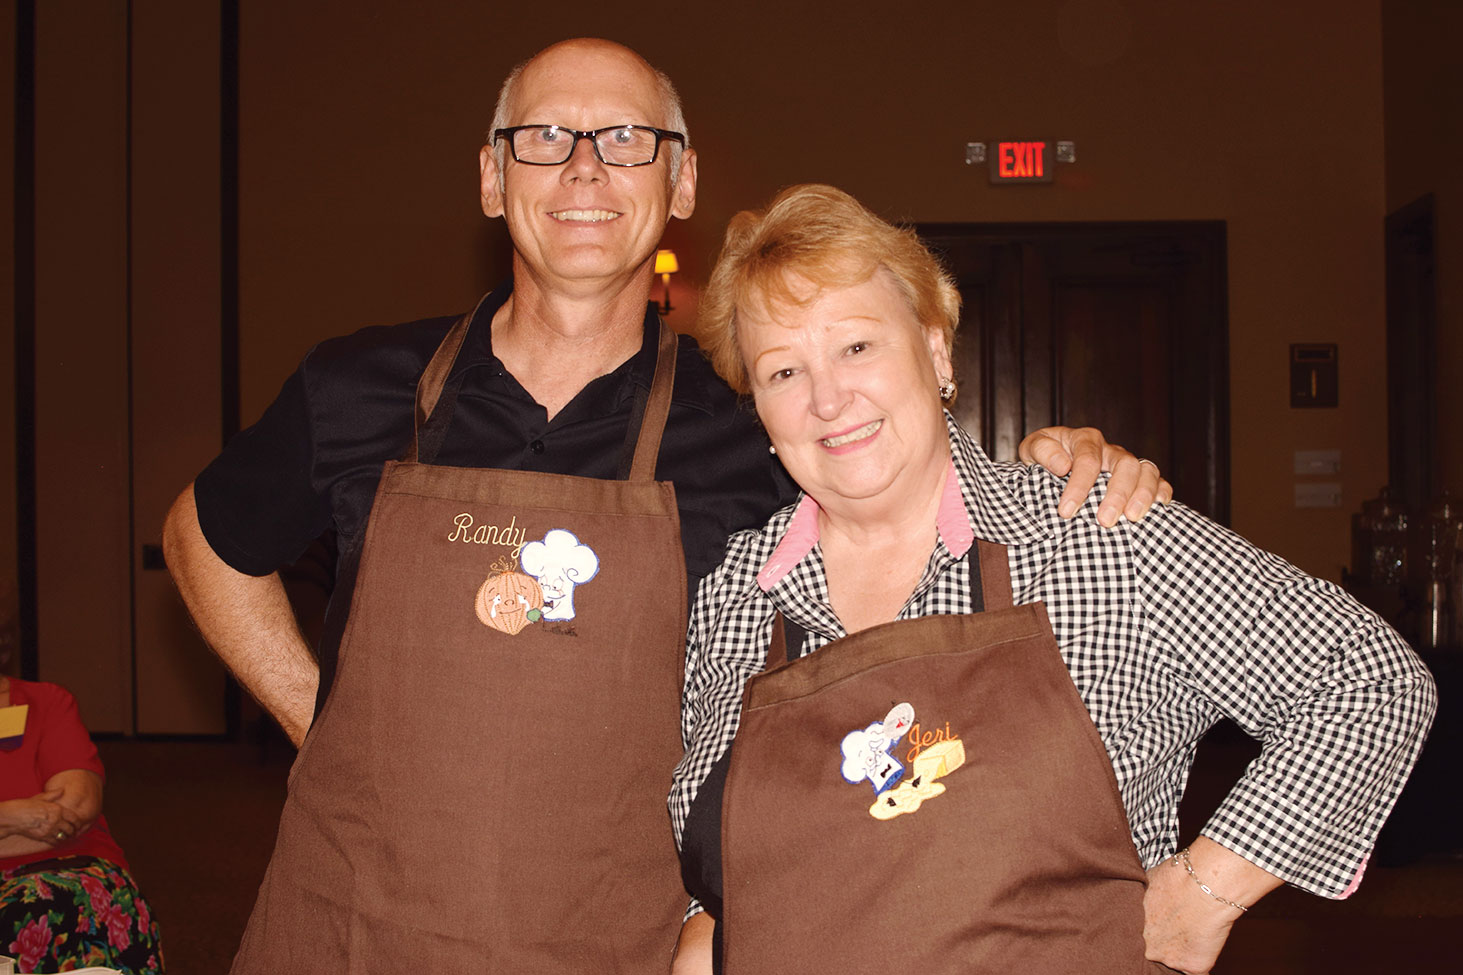 Randy and Jeri were happy to receive aprons made for them by TWOQC member Sue Ann Obremski; photo by Eileen Sykora